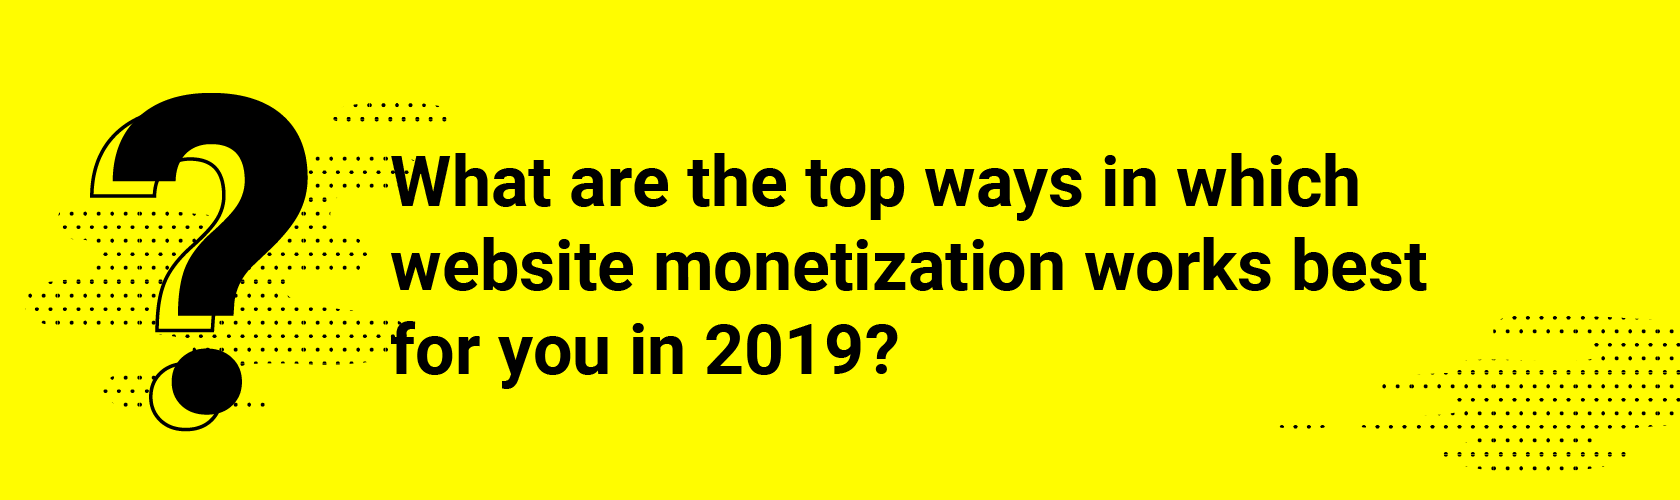 Q1 What are the top ways in which website monetization works best for you in 2019?